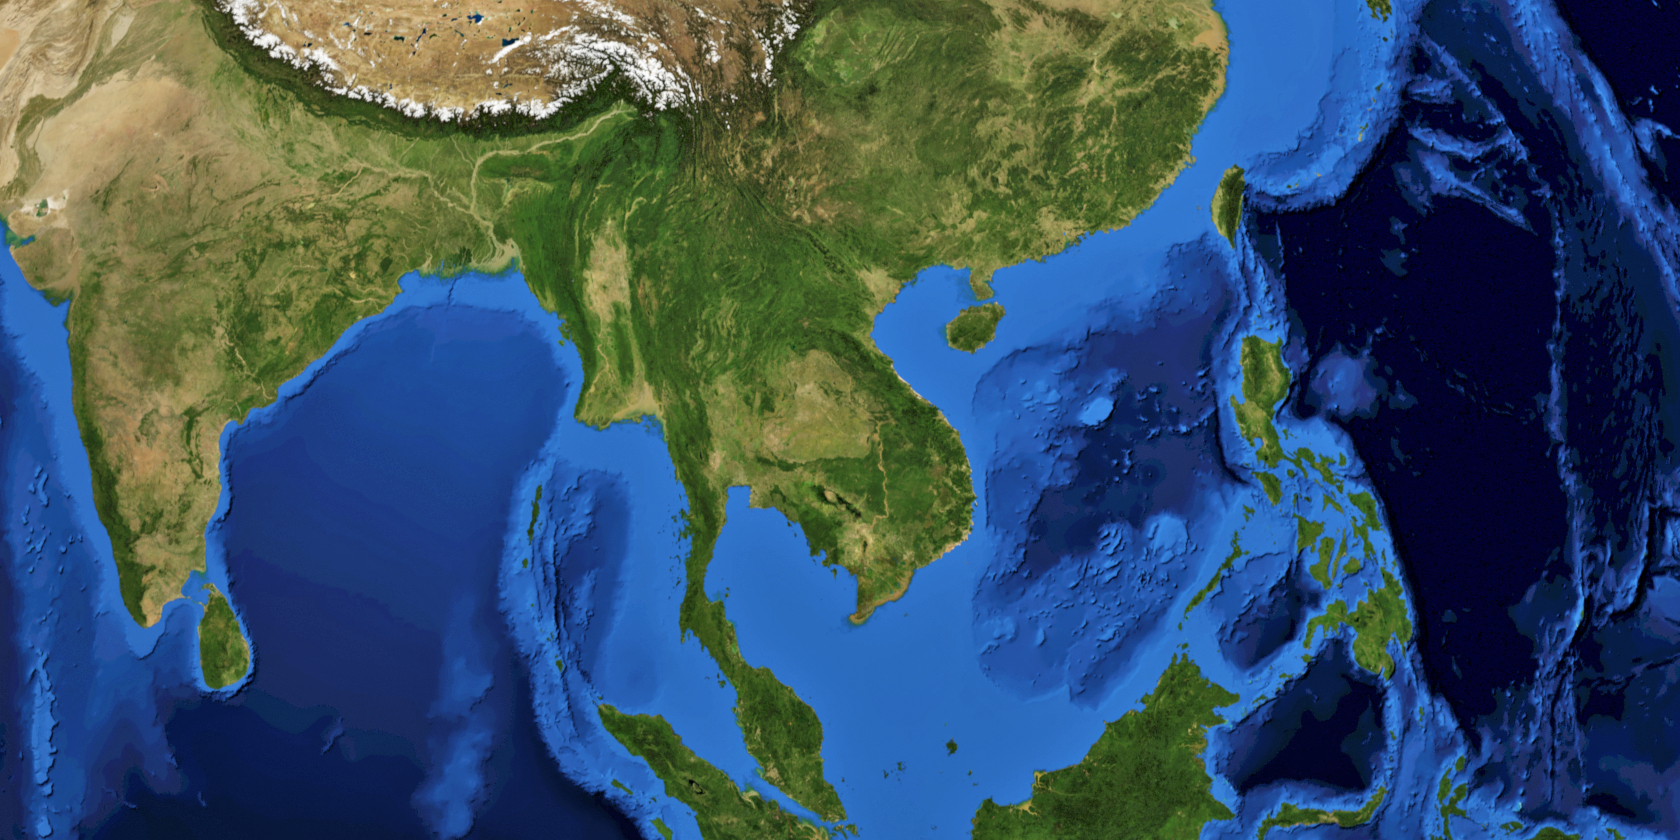 Thai Butadiene Sector Set to Face Tighter Emissions Regulations